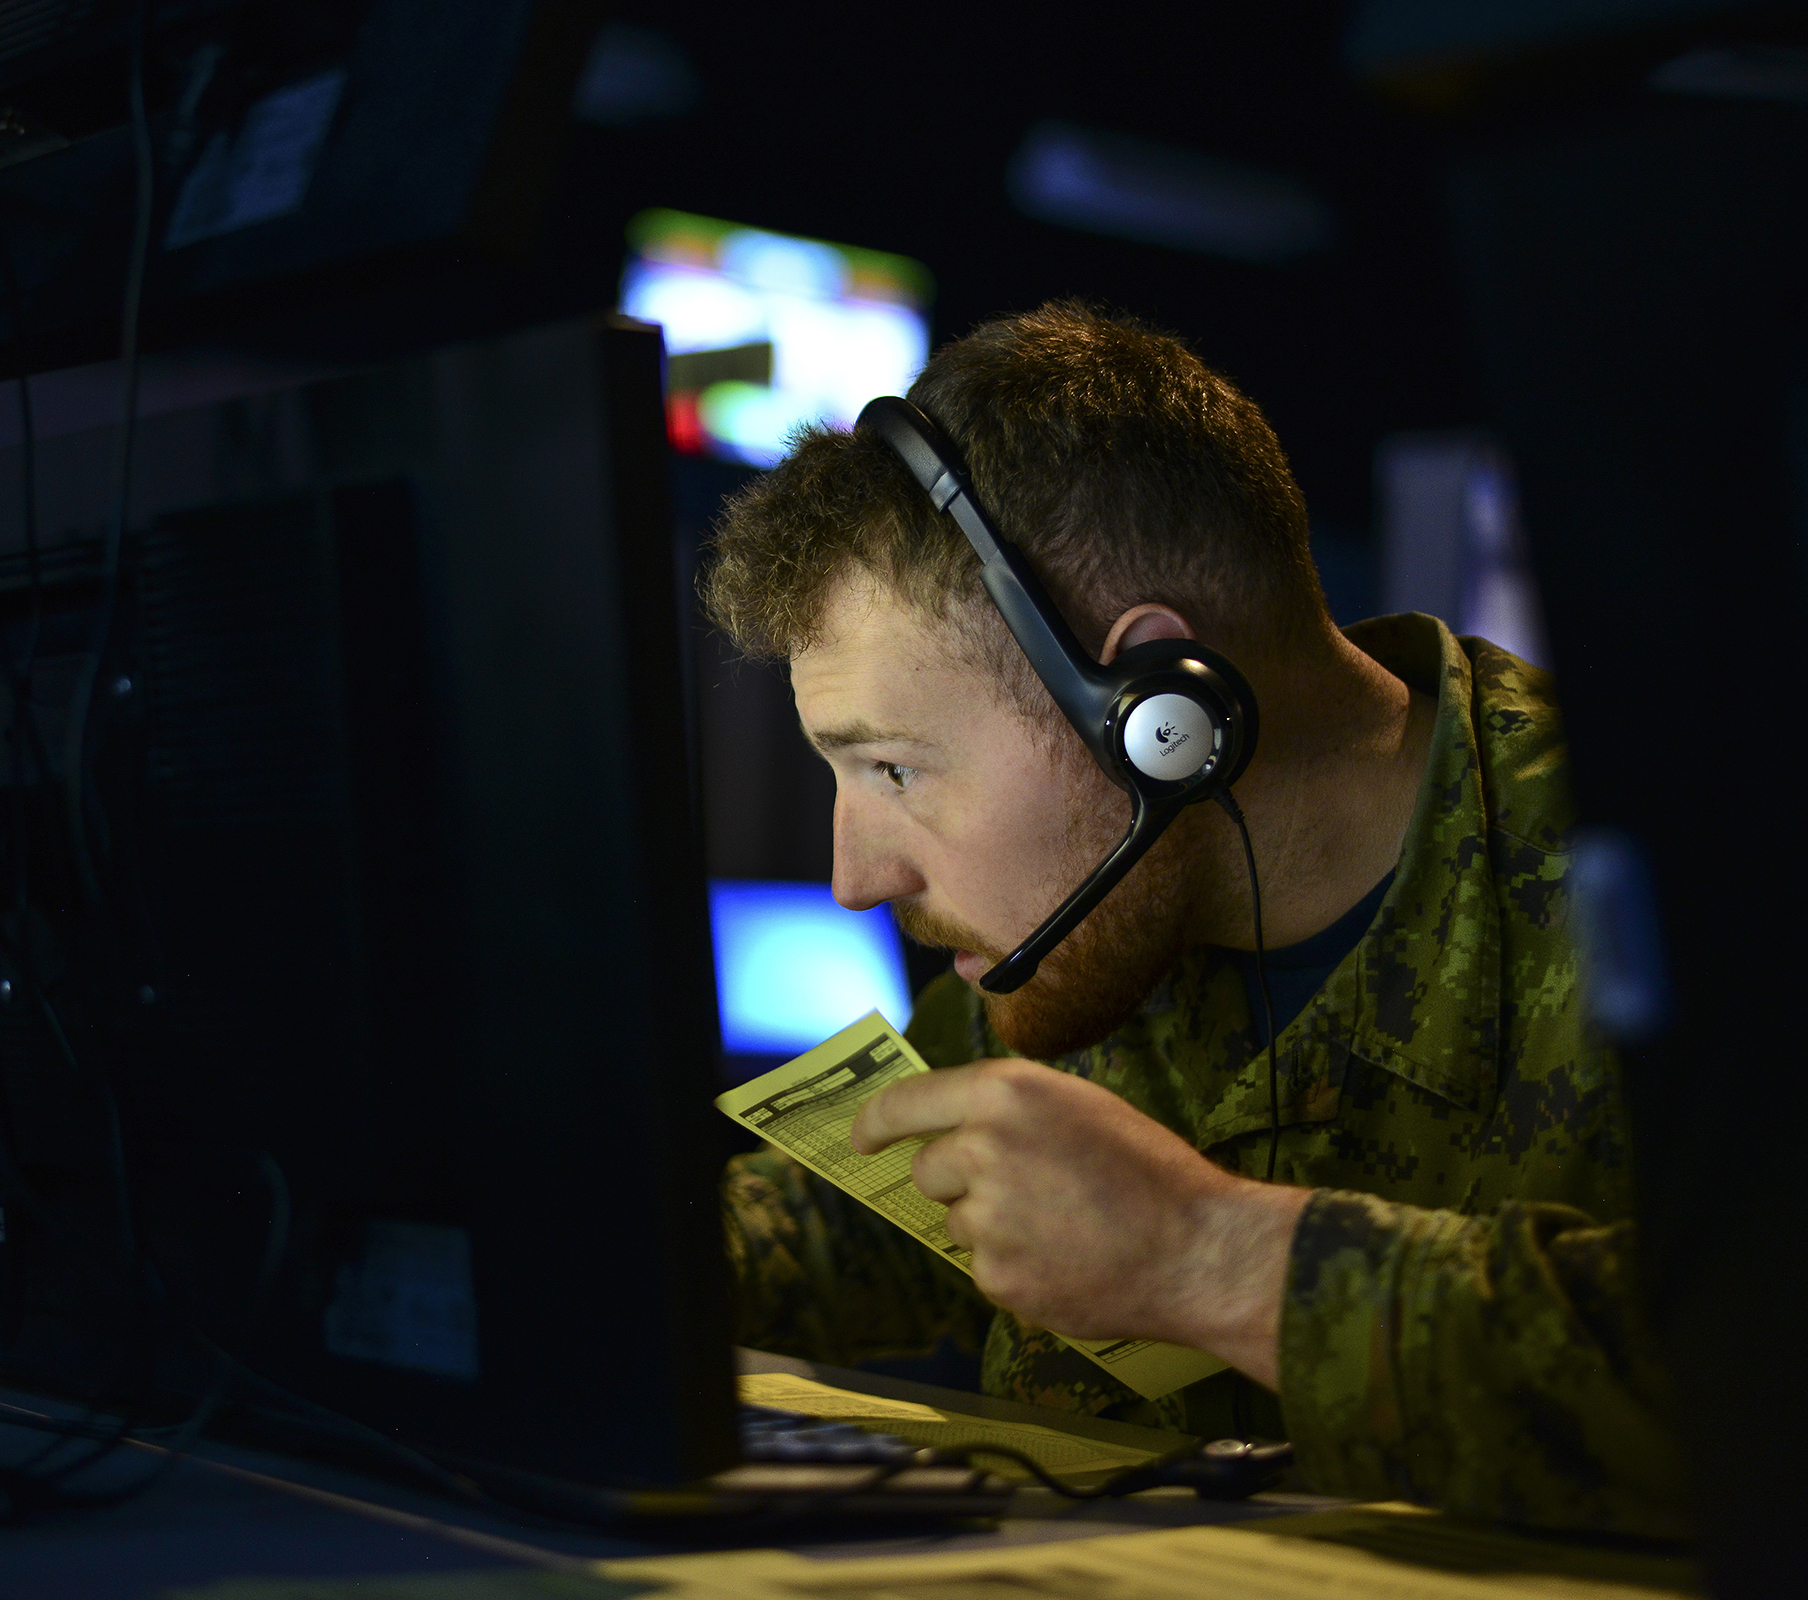 A member of the Royal Canadian Air Force takes part in Exercise Coalition Virtual Flag 19-4 on September 10, 2019, at the host location, Kirtland Air Force Base in New Mexico. PHOTO: Staff Sergeant Kimberly Nagle, USAF, 5854750